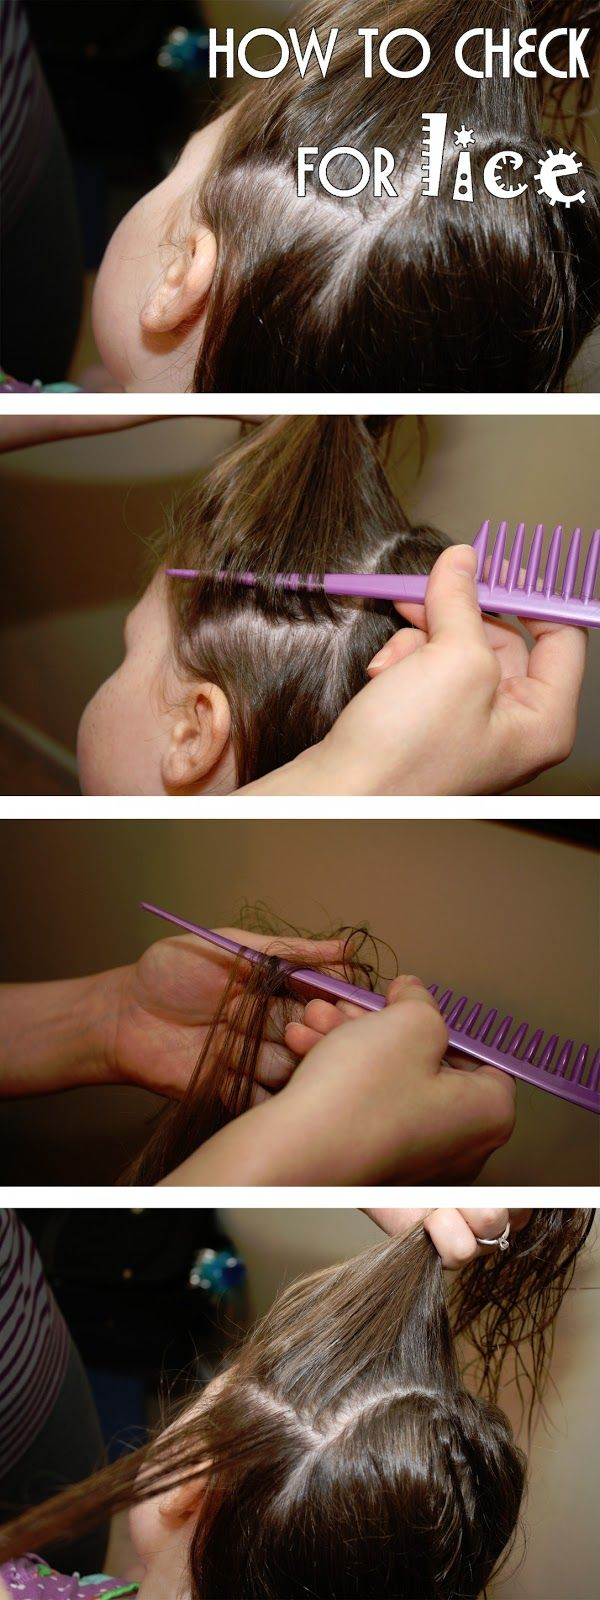 25 unique lice shampoo ideas on pinterest tea tree oil lice love my lists how to check for lice and nits how we get rid of them ccuart Gallery